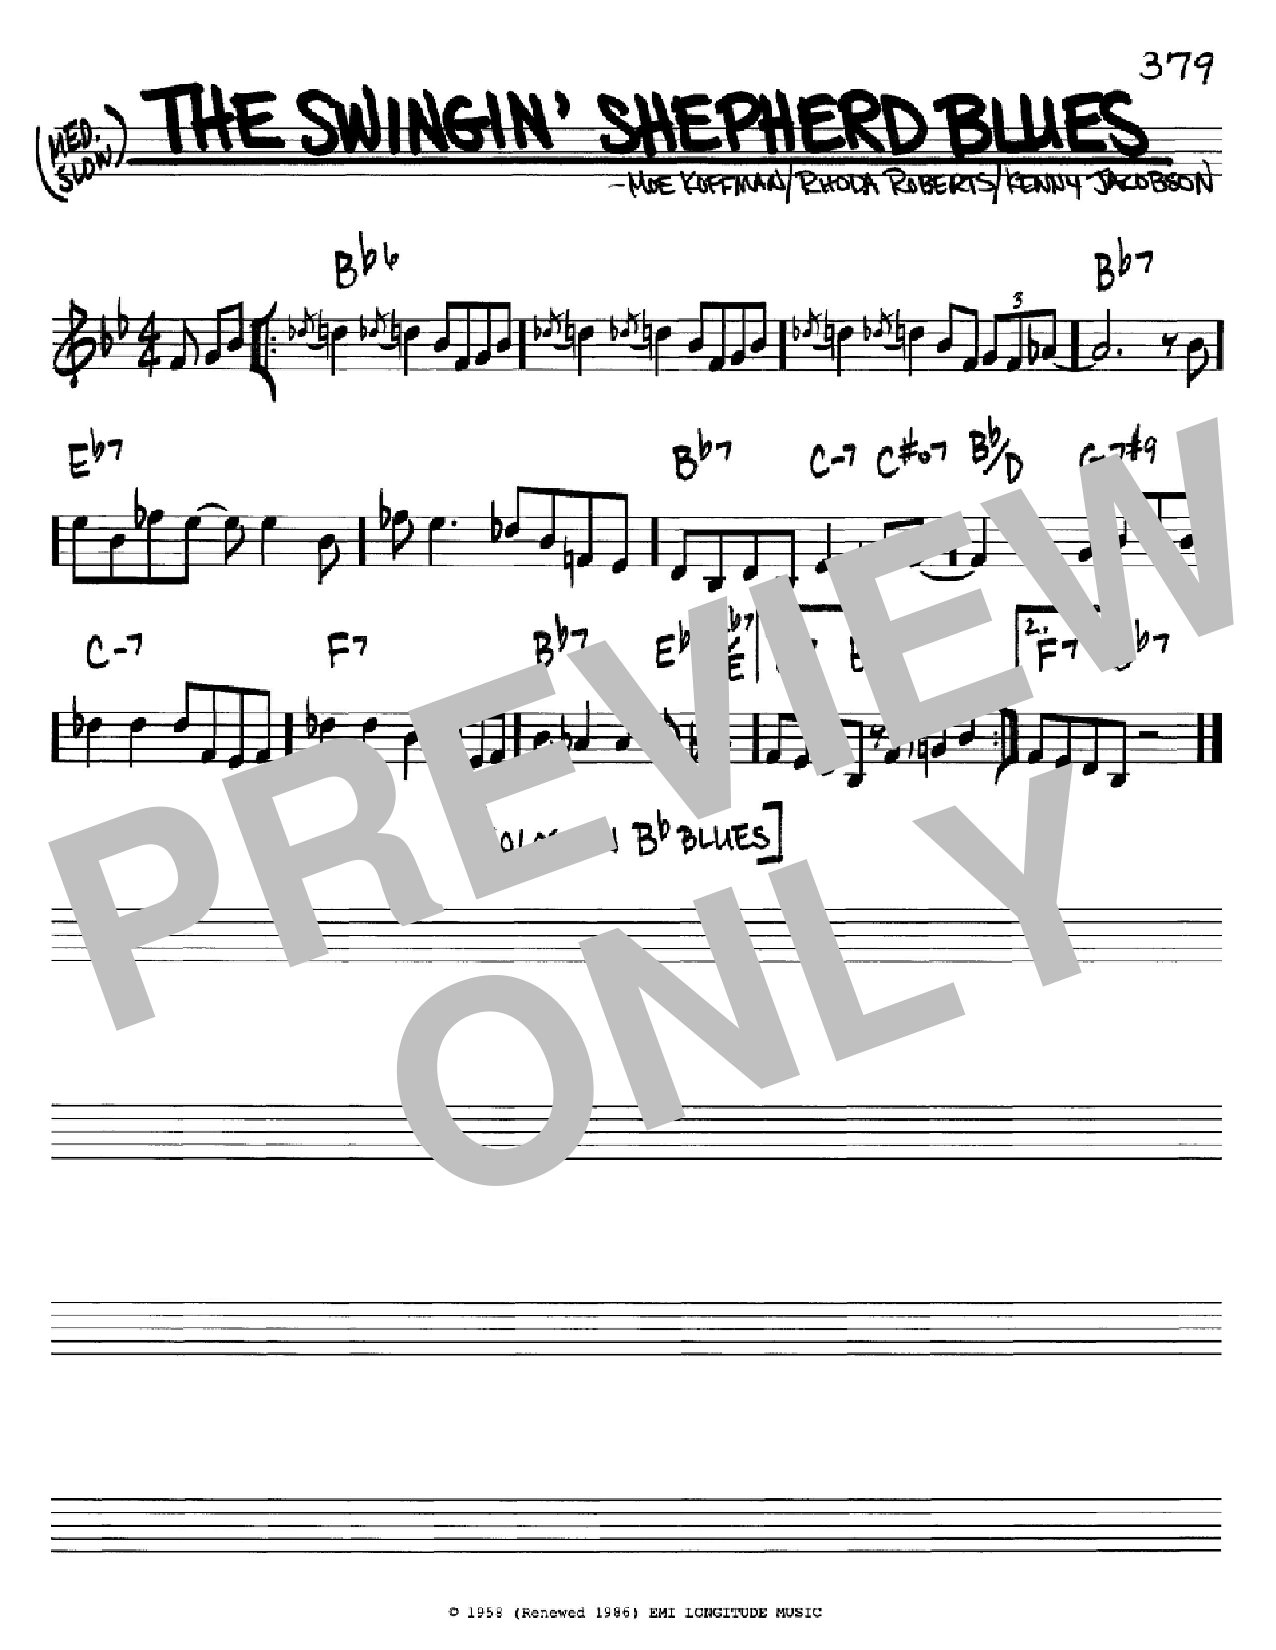 The Swingin' Shepherd Blues Sheet Music